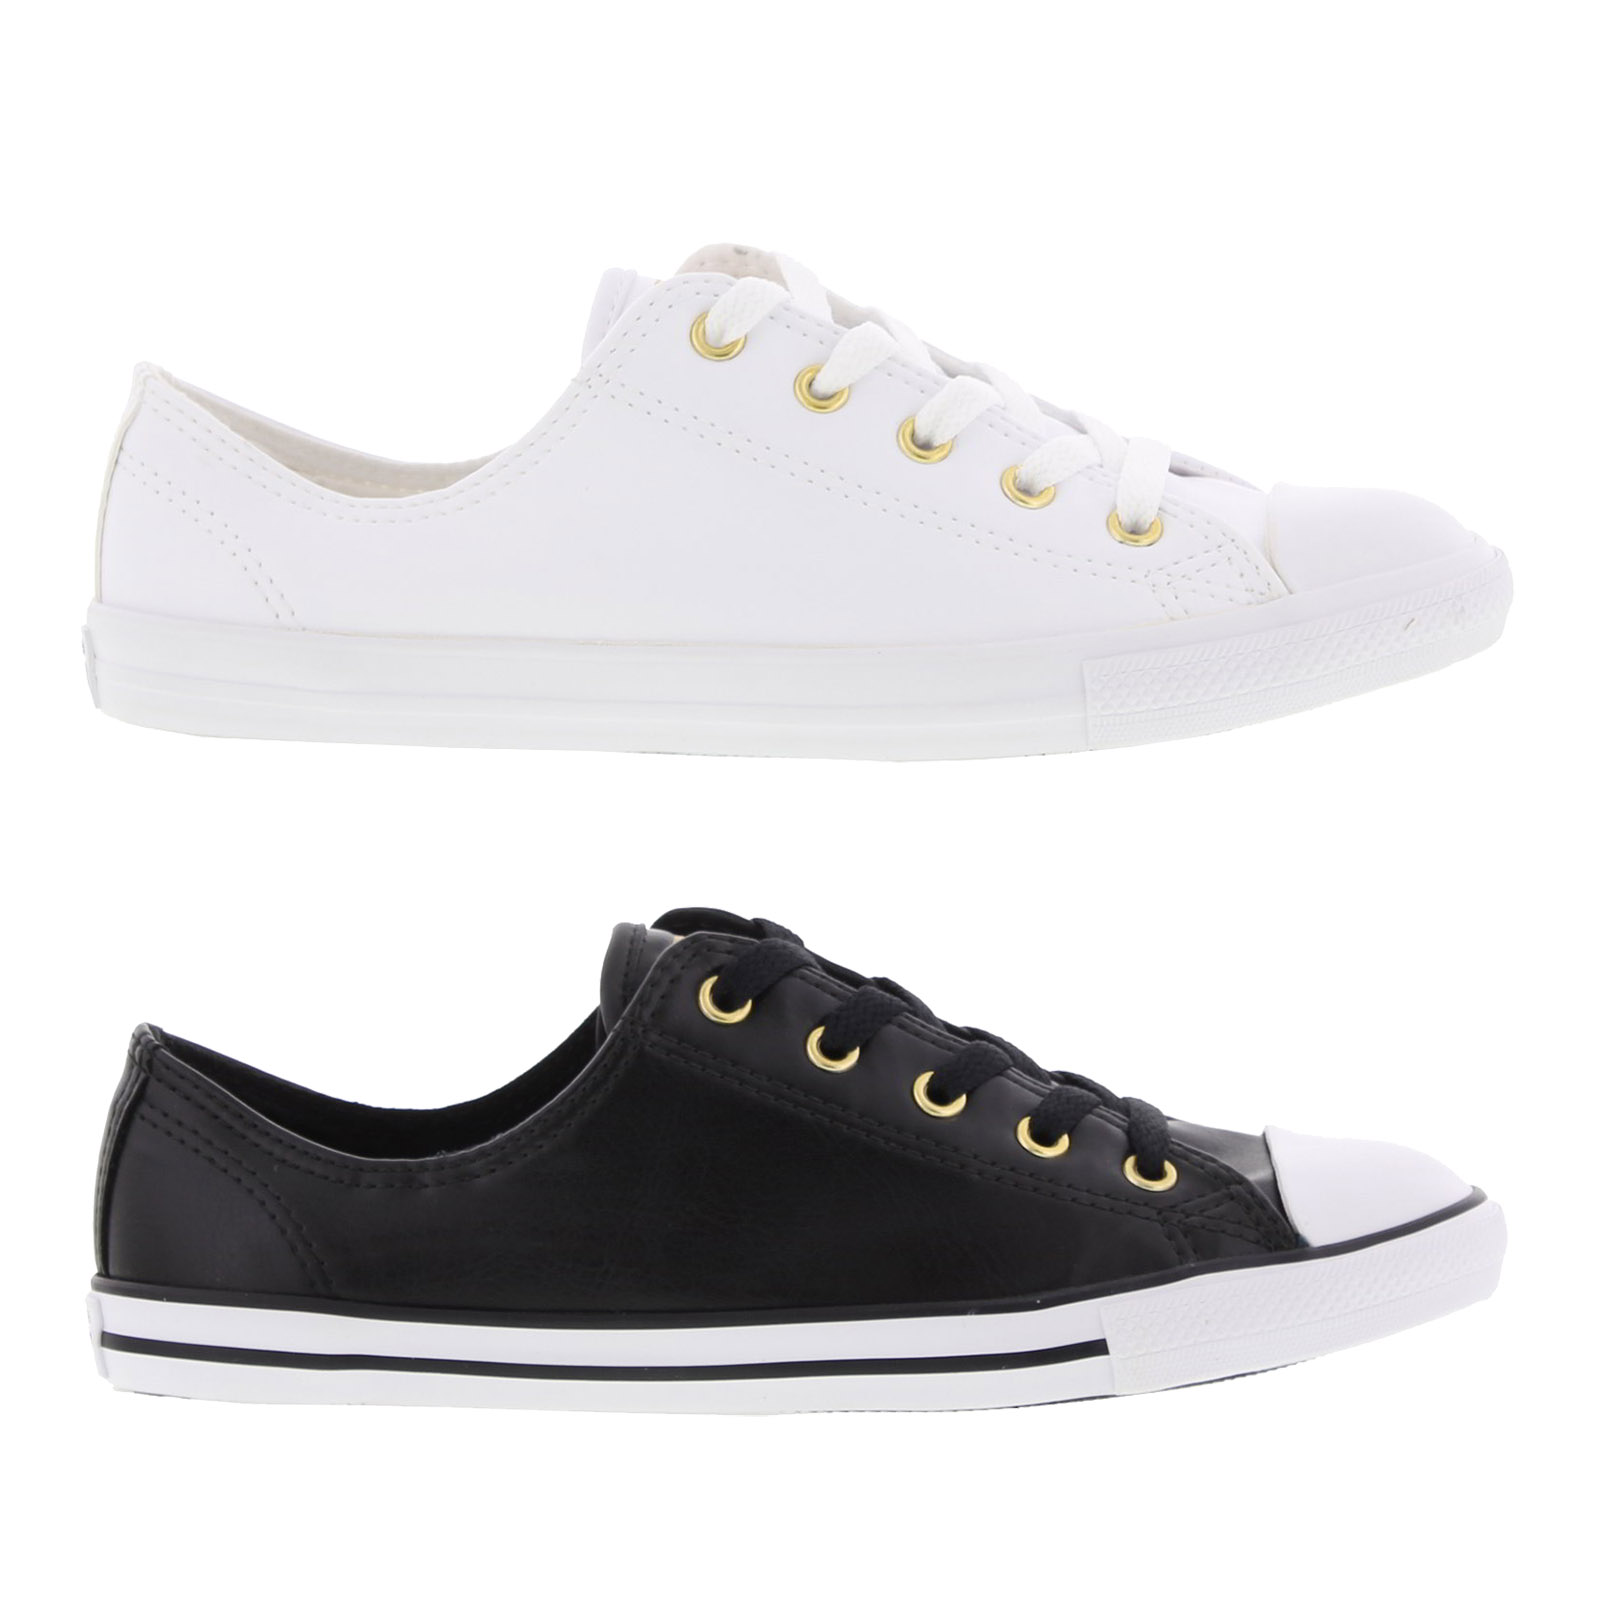 0b27778c0ced Details about Converse All Star Dainty Oxford Womens Classic Synthetic  Leather Shoes Trainers